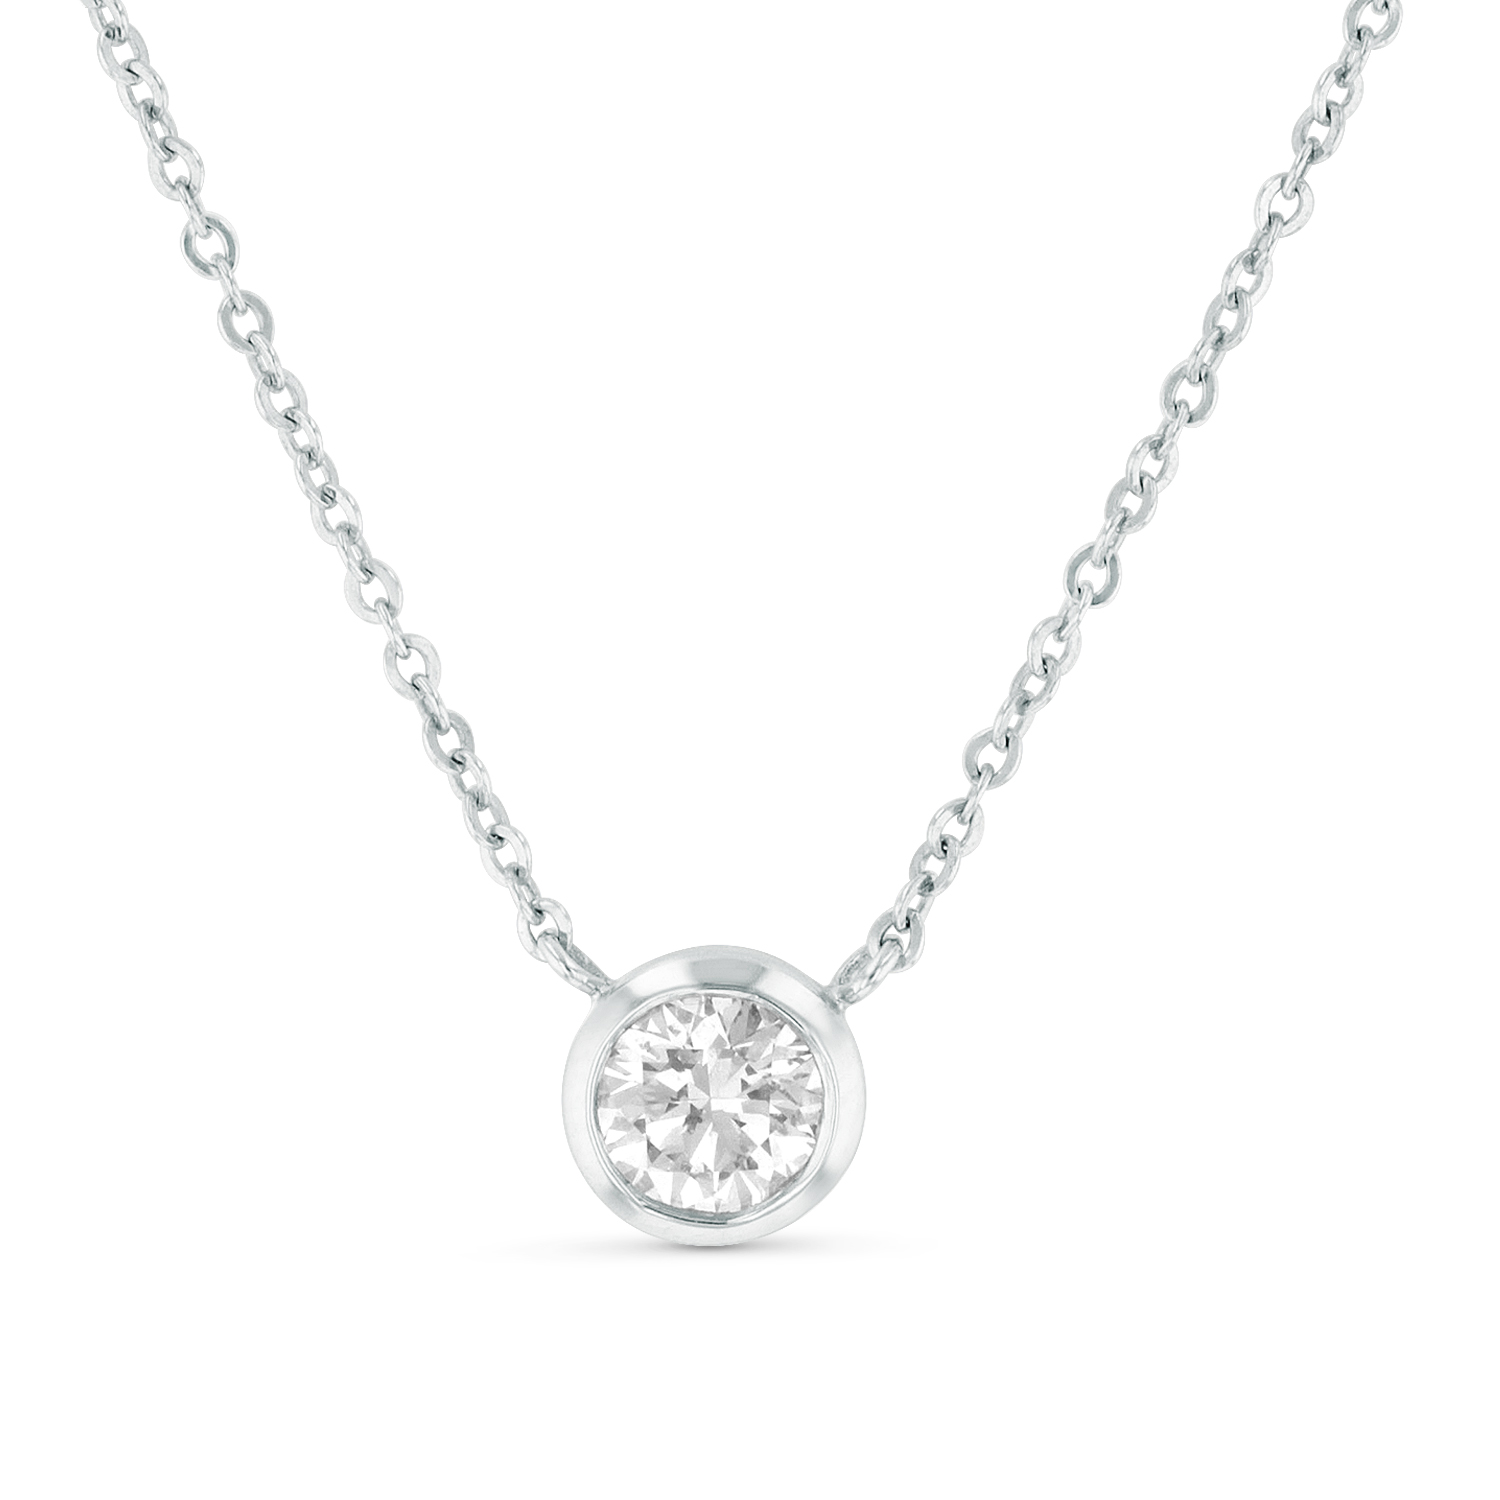 View 0.50ct Bezel Set Solitaire Pendant in 14k Gold